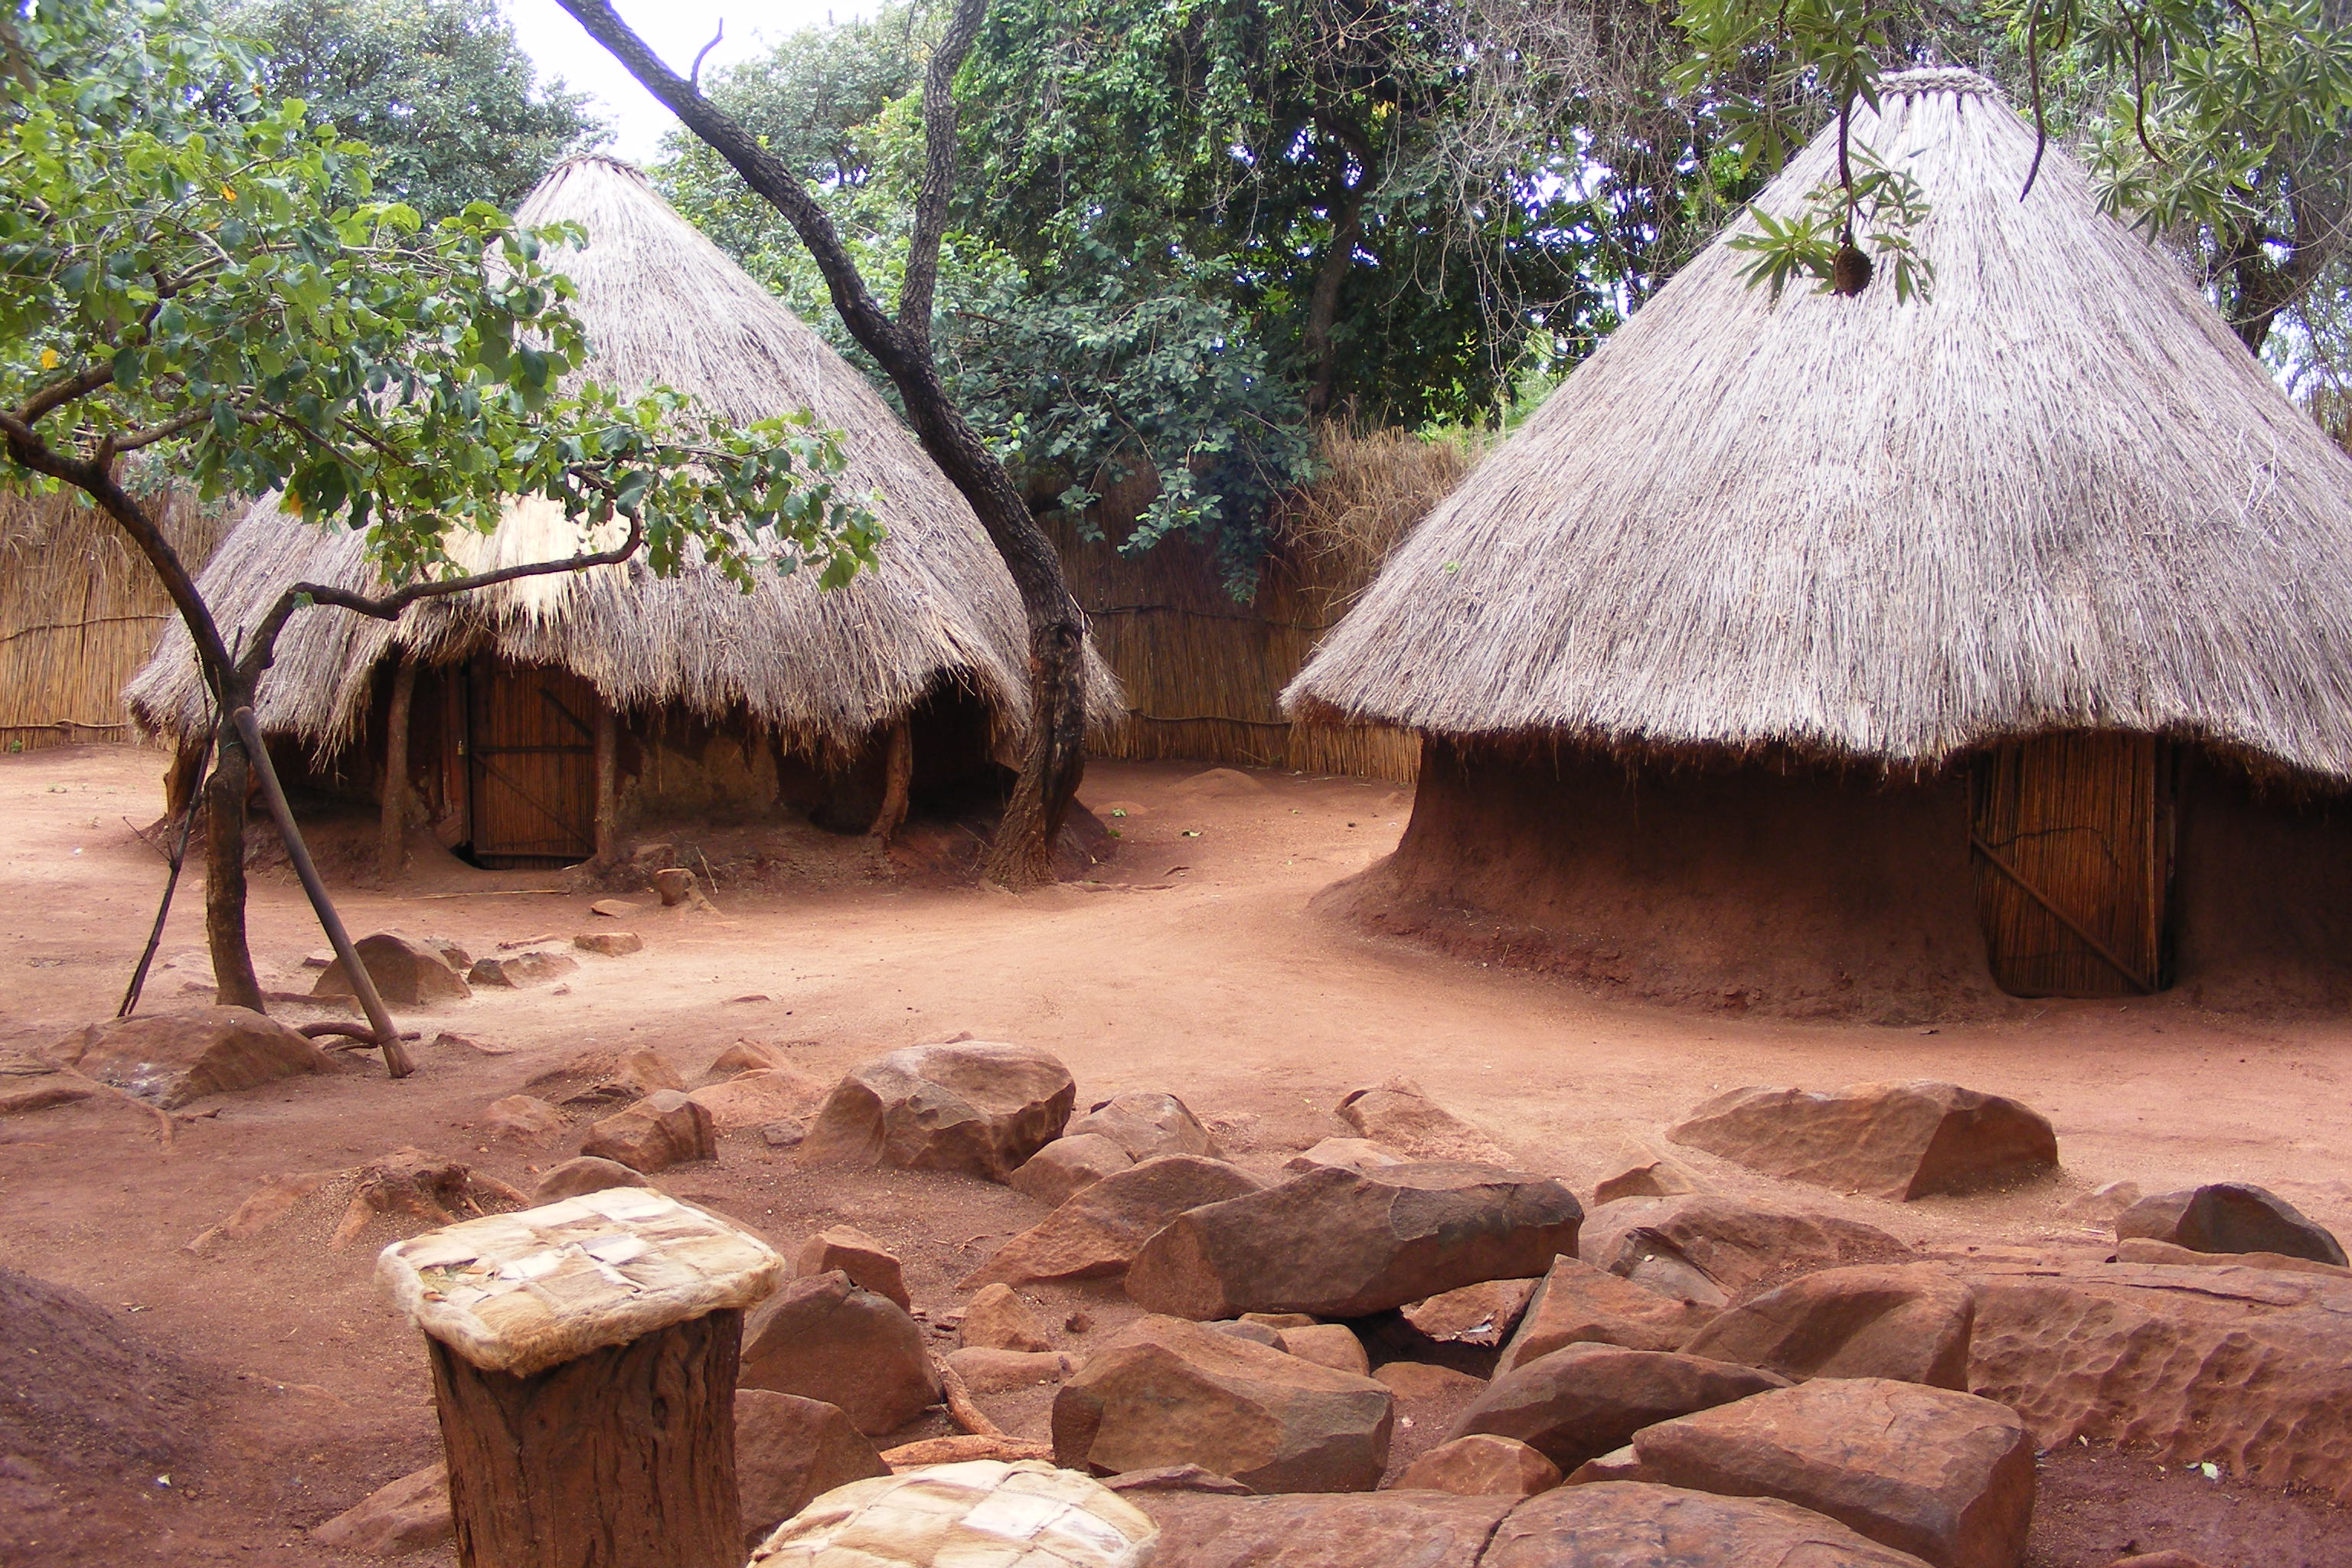 Each of the chief's wives had a separate sleeping hut, which she shared with her own children.